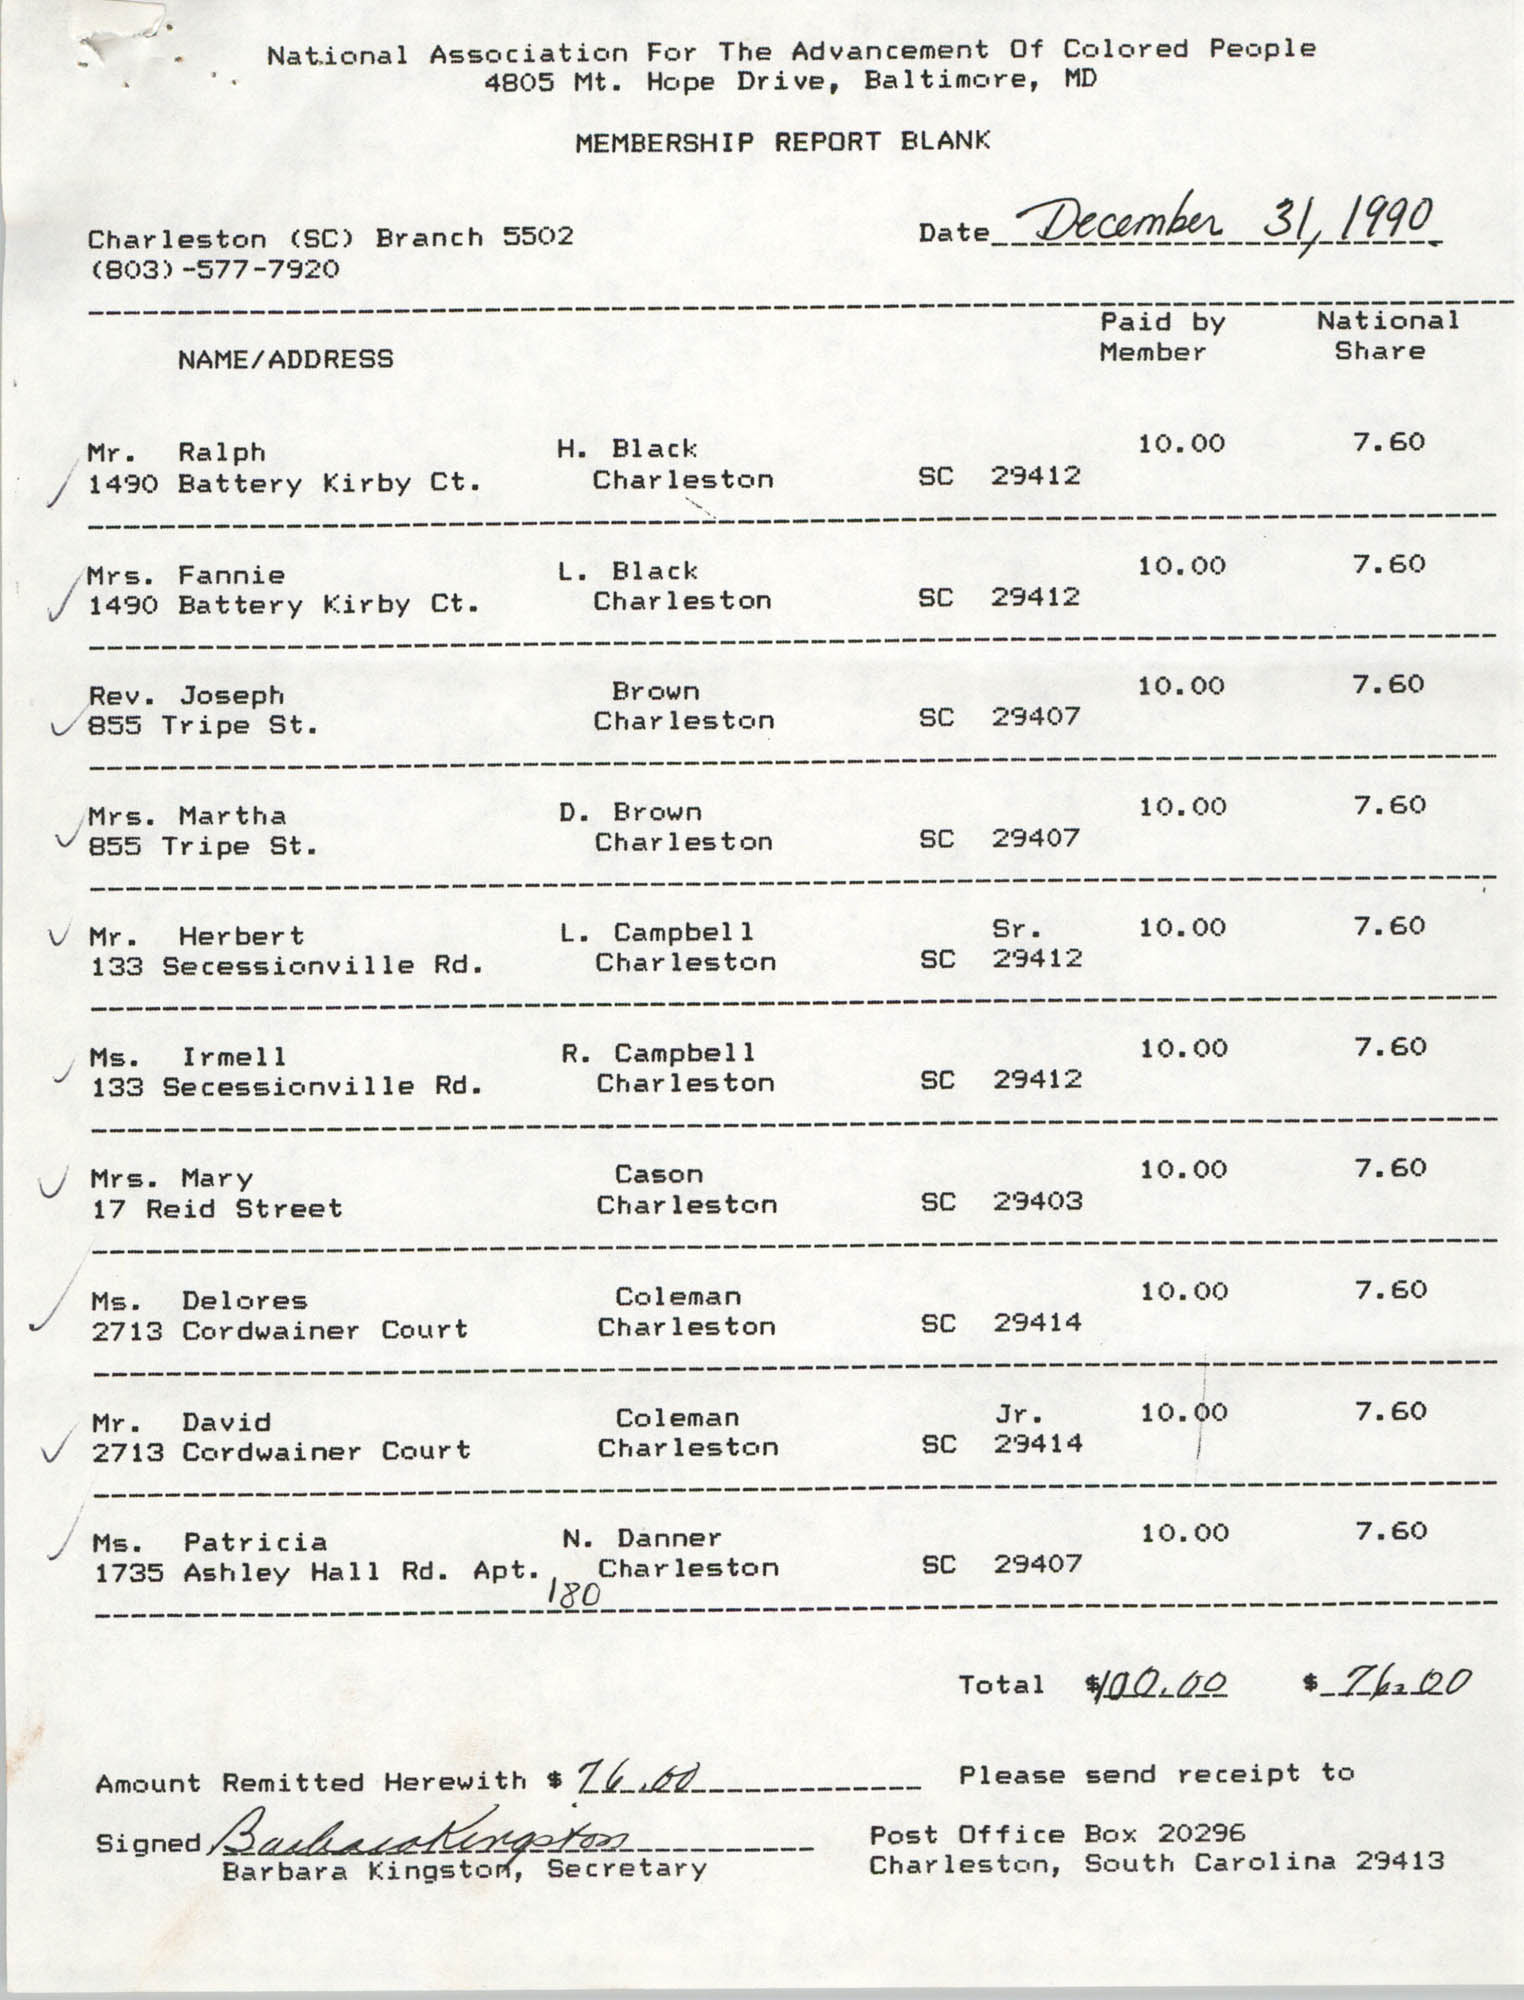 Membership Report Blank, Charleston Branch of the NAACP, Barbara Kingston, December 31, 1990